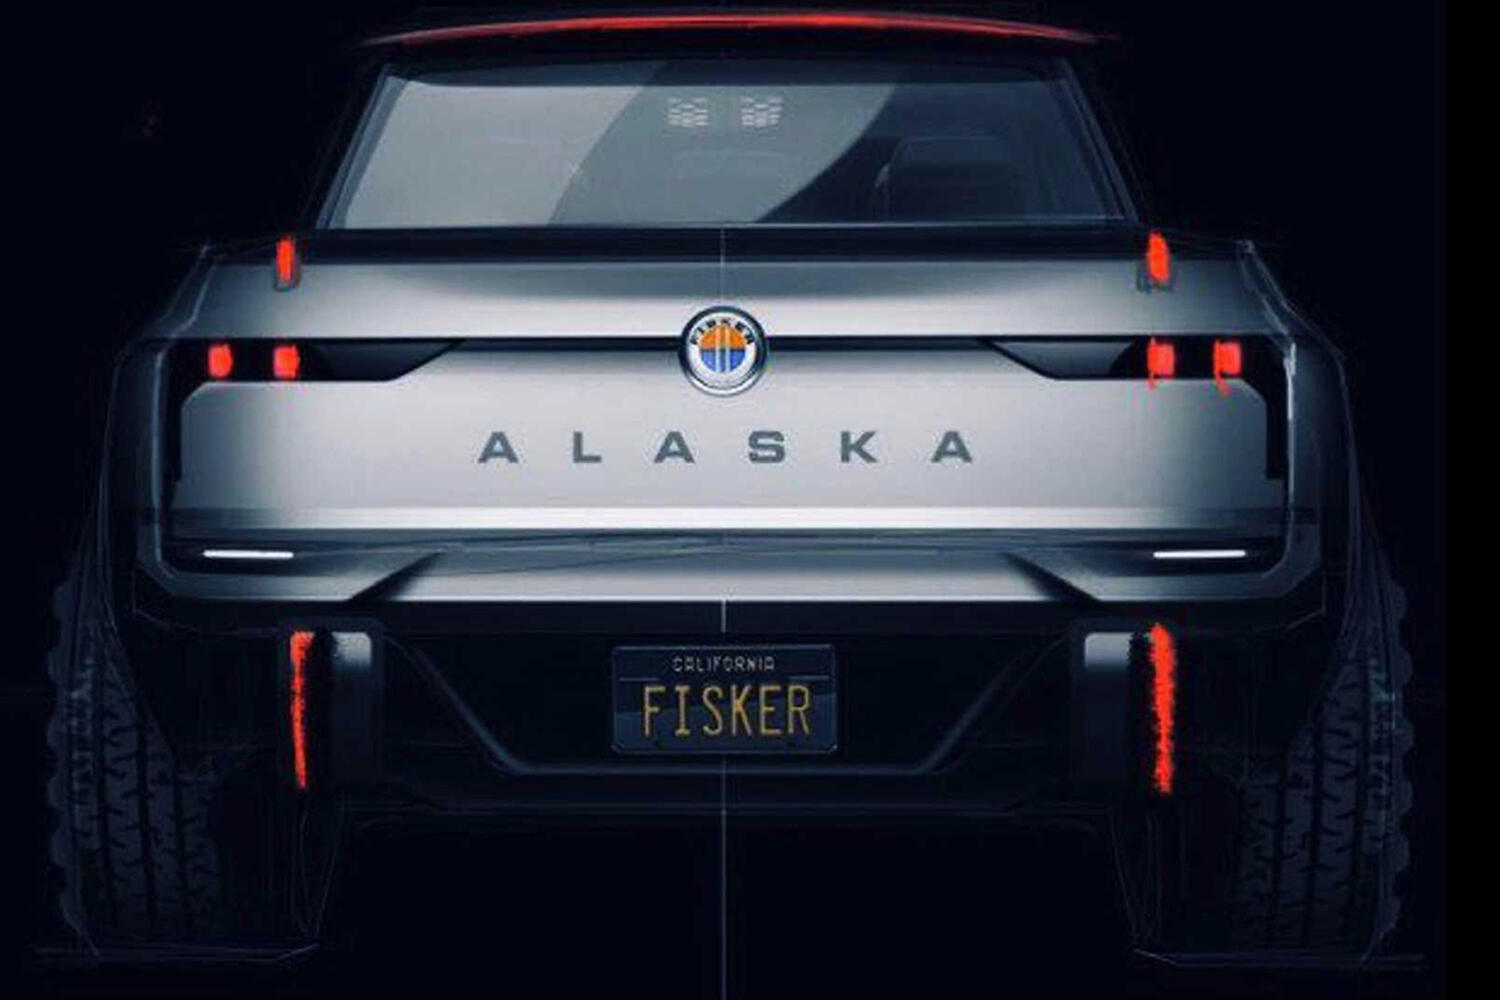 Fisker Alaska electric pickup